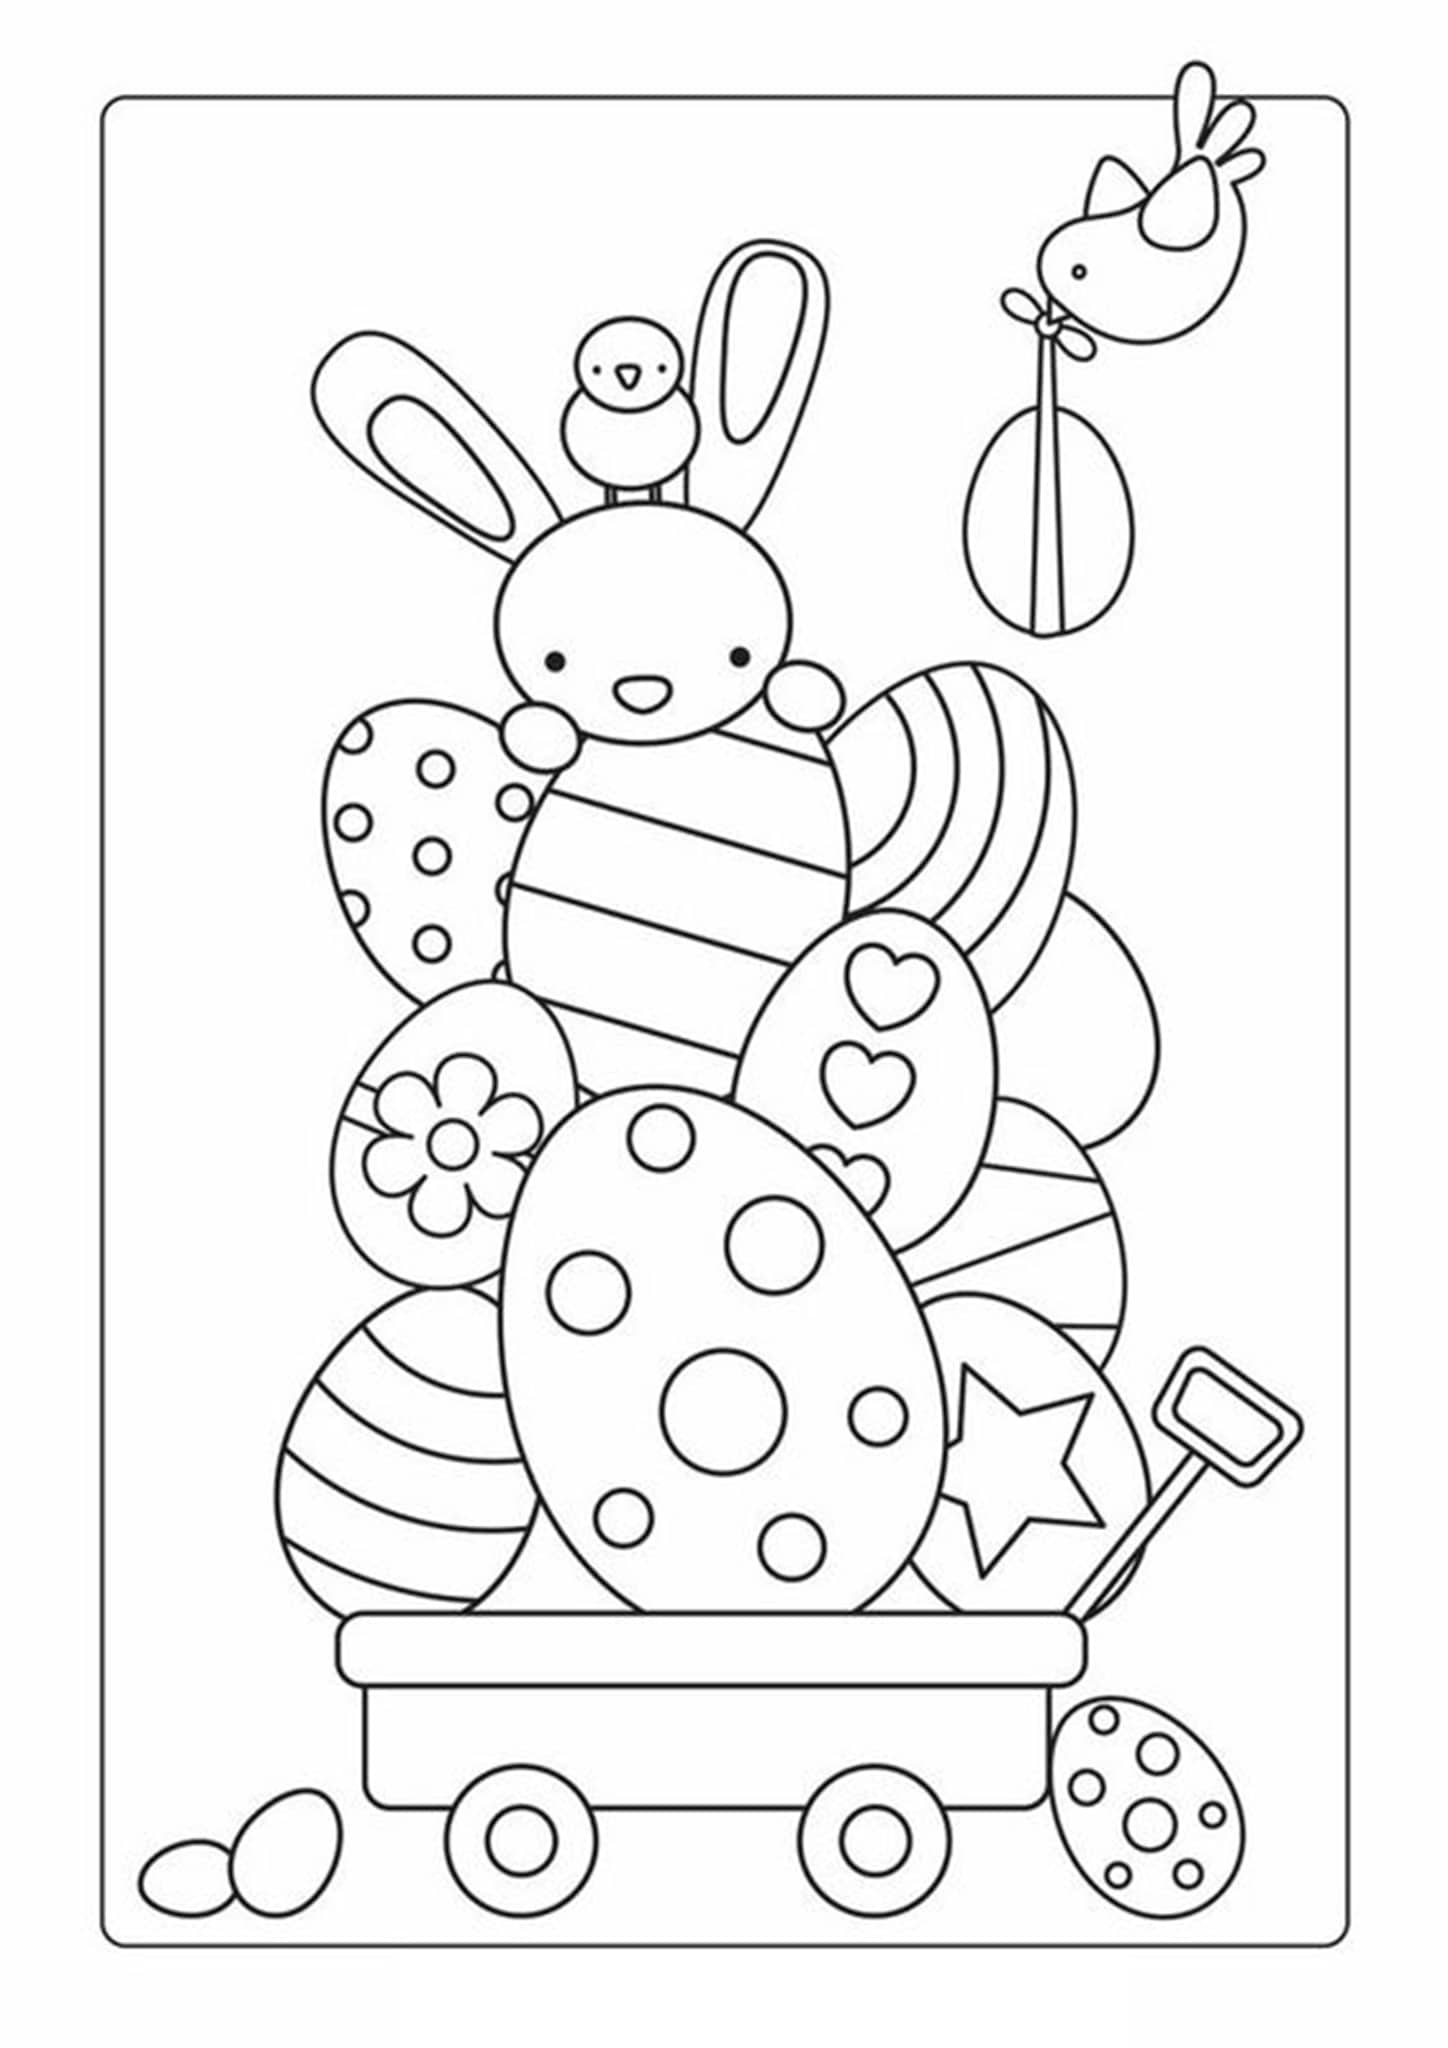 coloring bunnies free easy to print bunny coloring pages tulamama coloring bunnies